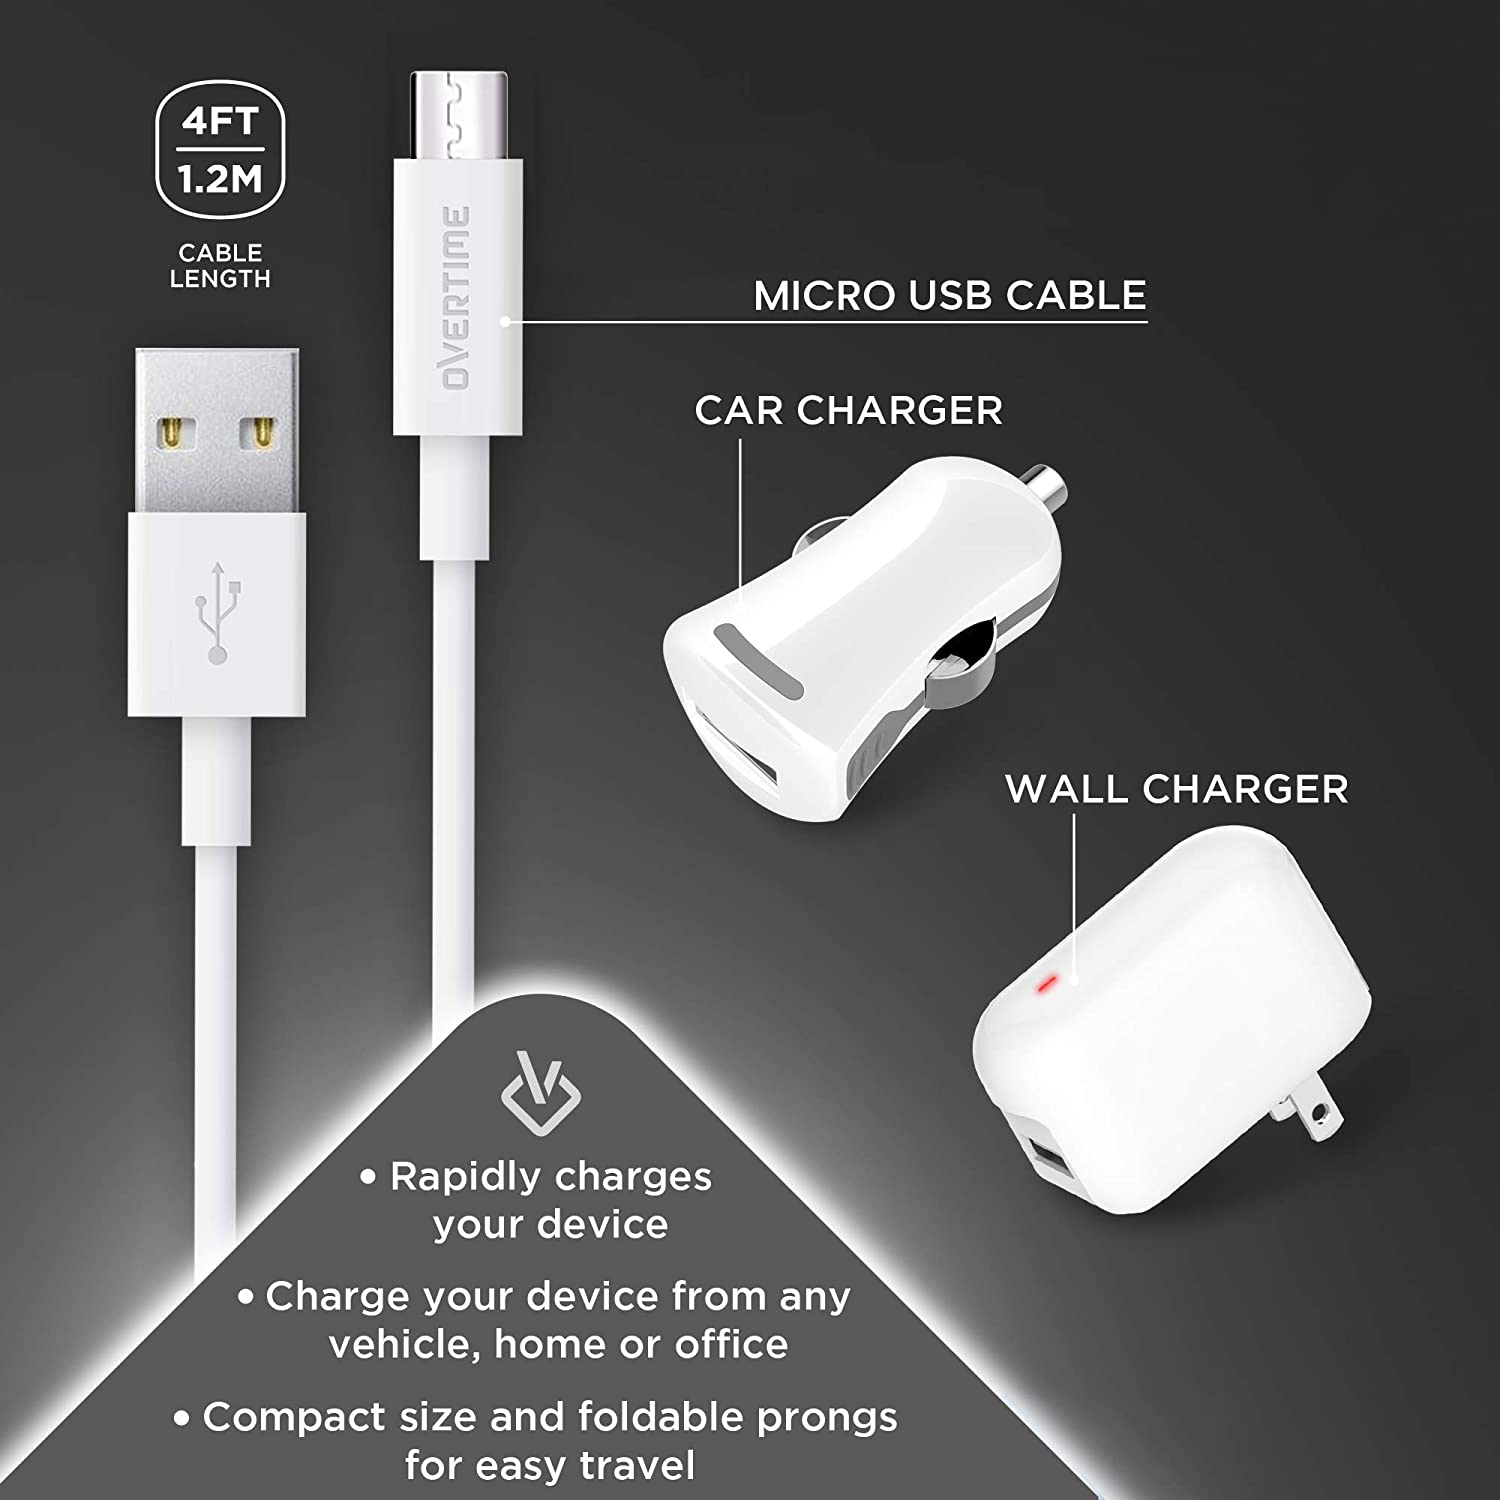 White Overtime Universal Micro USB Home Charger Adapter and Micro USB Cable with Car Charger Pixel 2.4 Amp Charger Kit with Rapid Charge Micro USB to USB A Cable from Android Samsung Galaxy